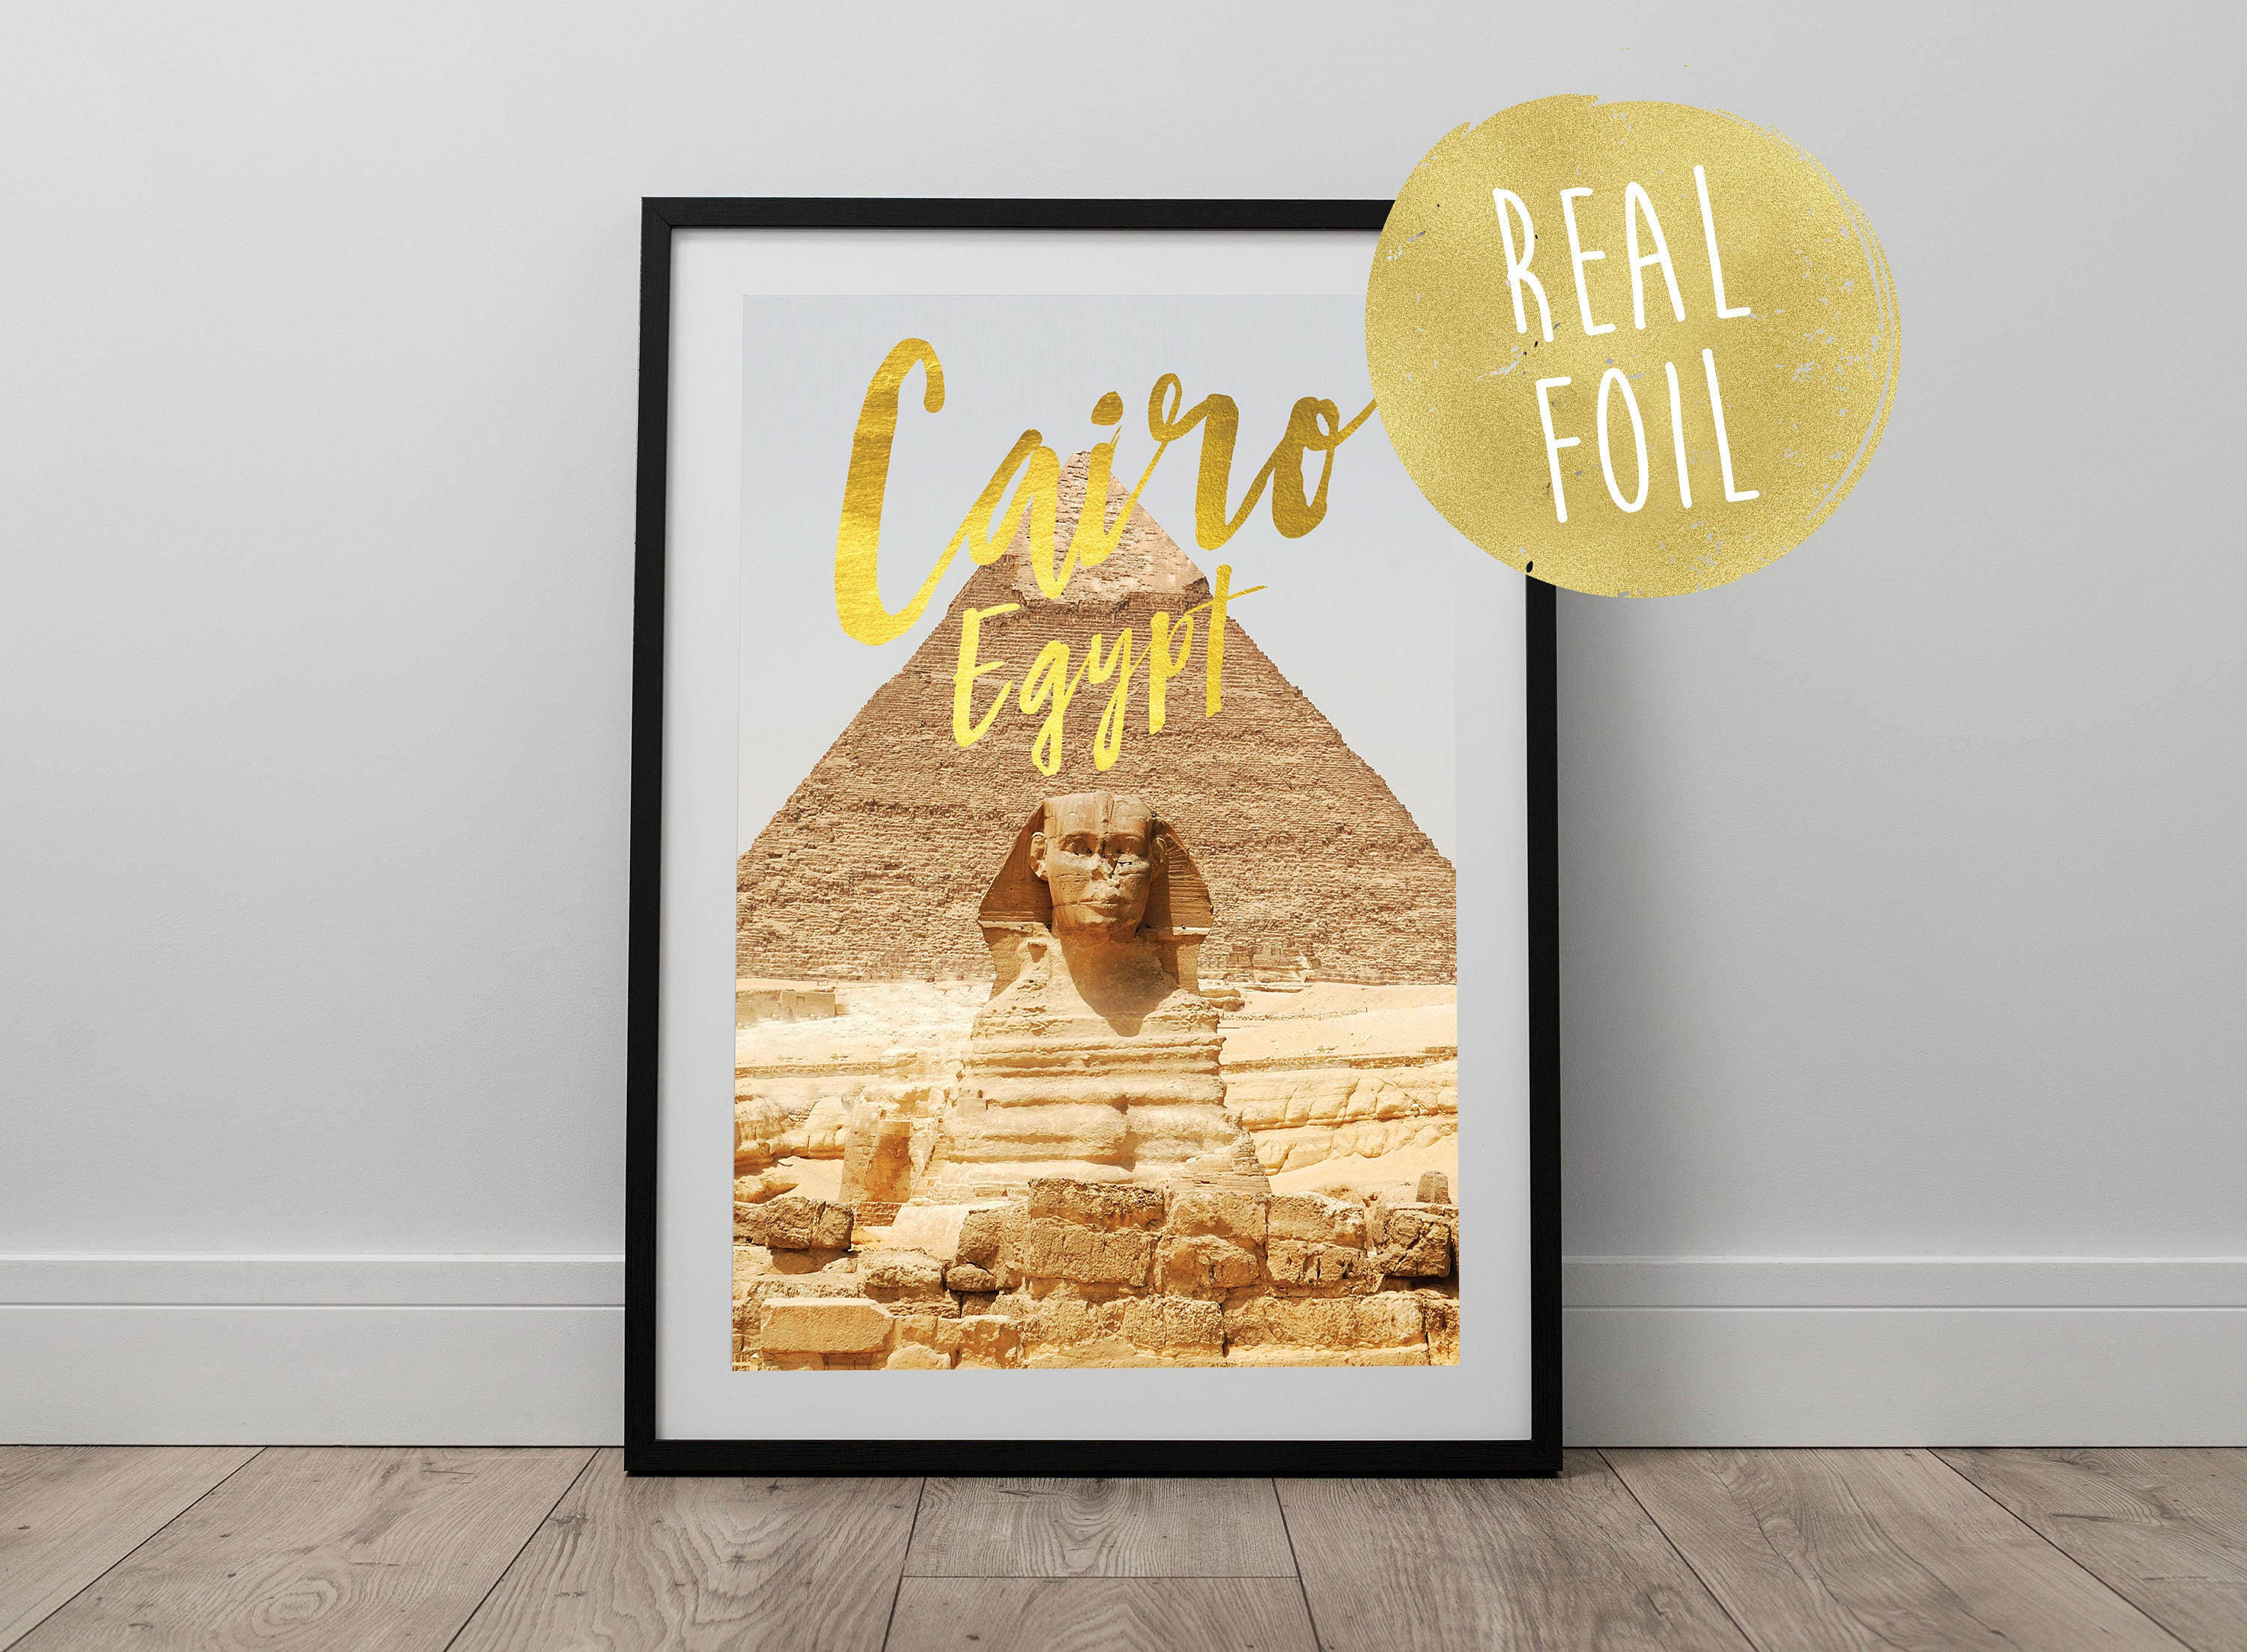 Real gold foil cairo egypt print travel wanderlust pyramids sphinx egypt wall art office art modern art home decor